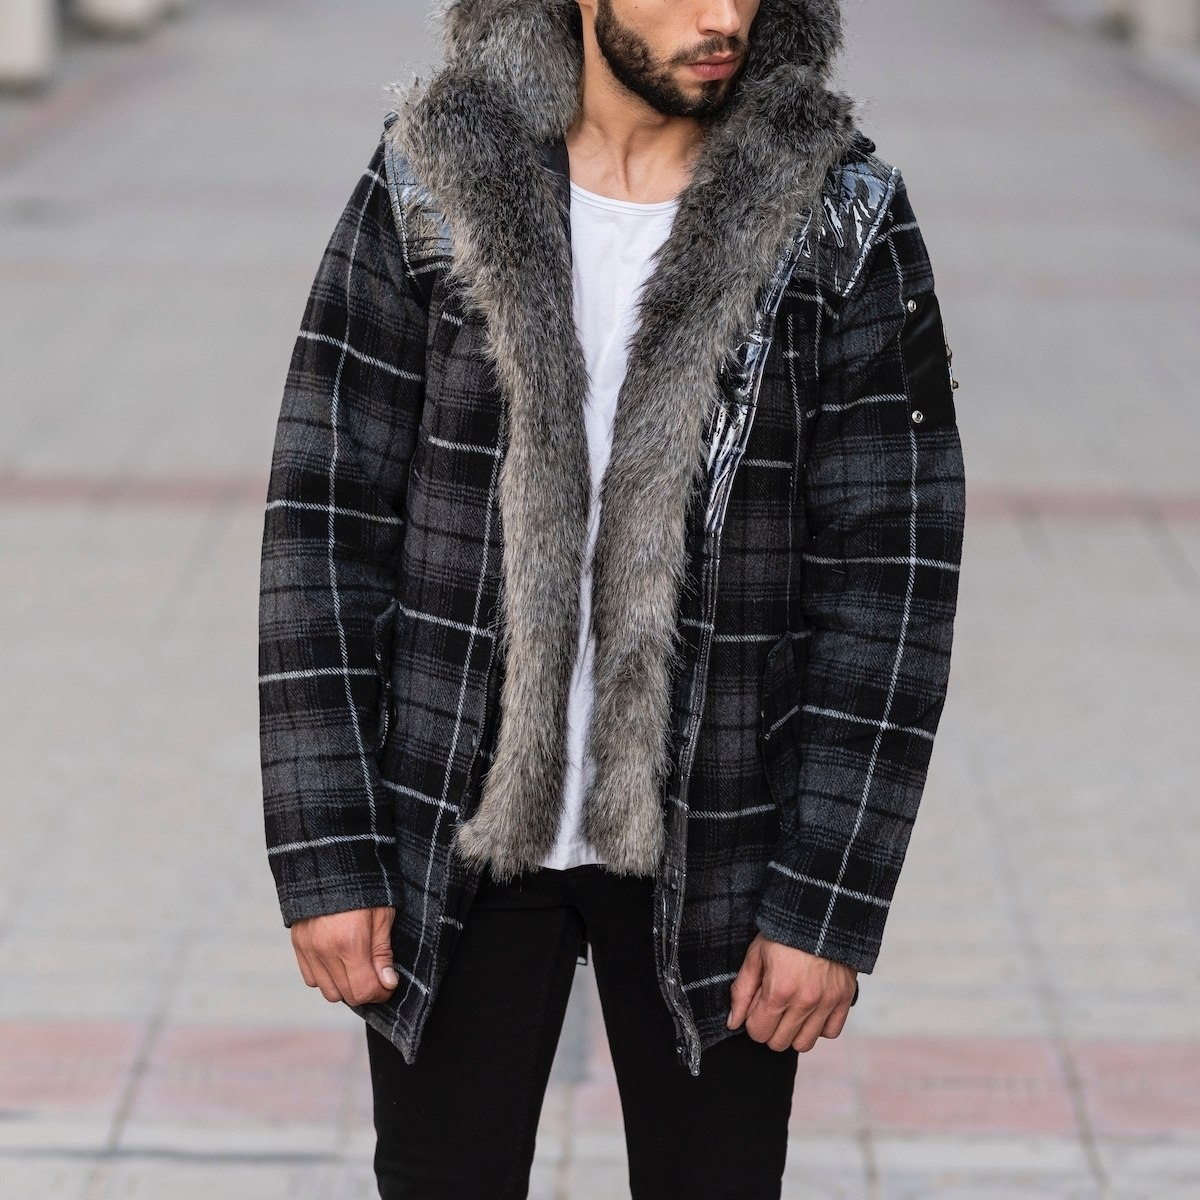 Furry Plaid Jacket With Hood MV Jacket Collection - 1